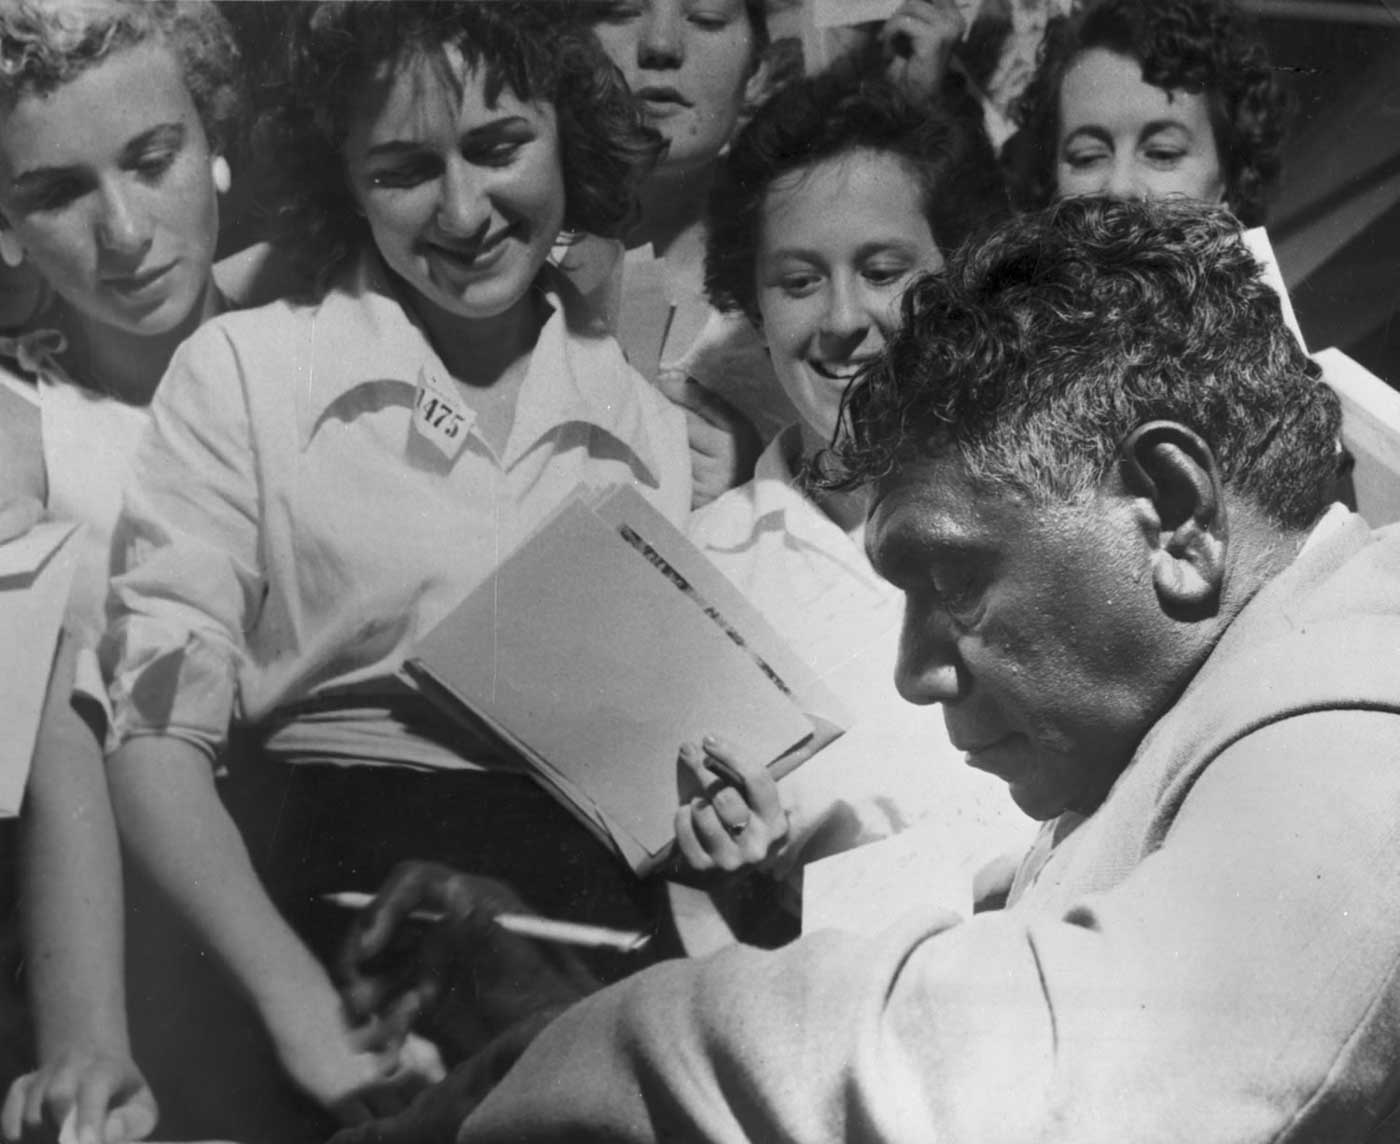 Black and white photo of a man signing autographs for a group of women.